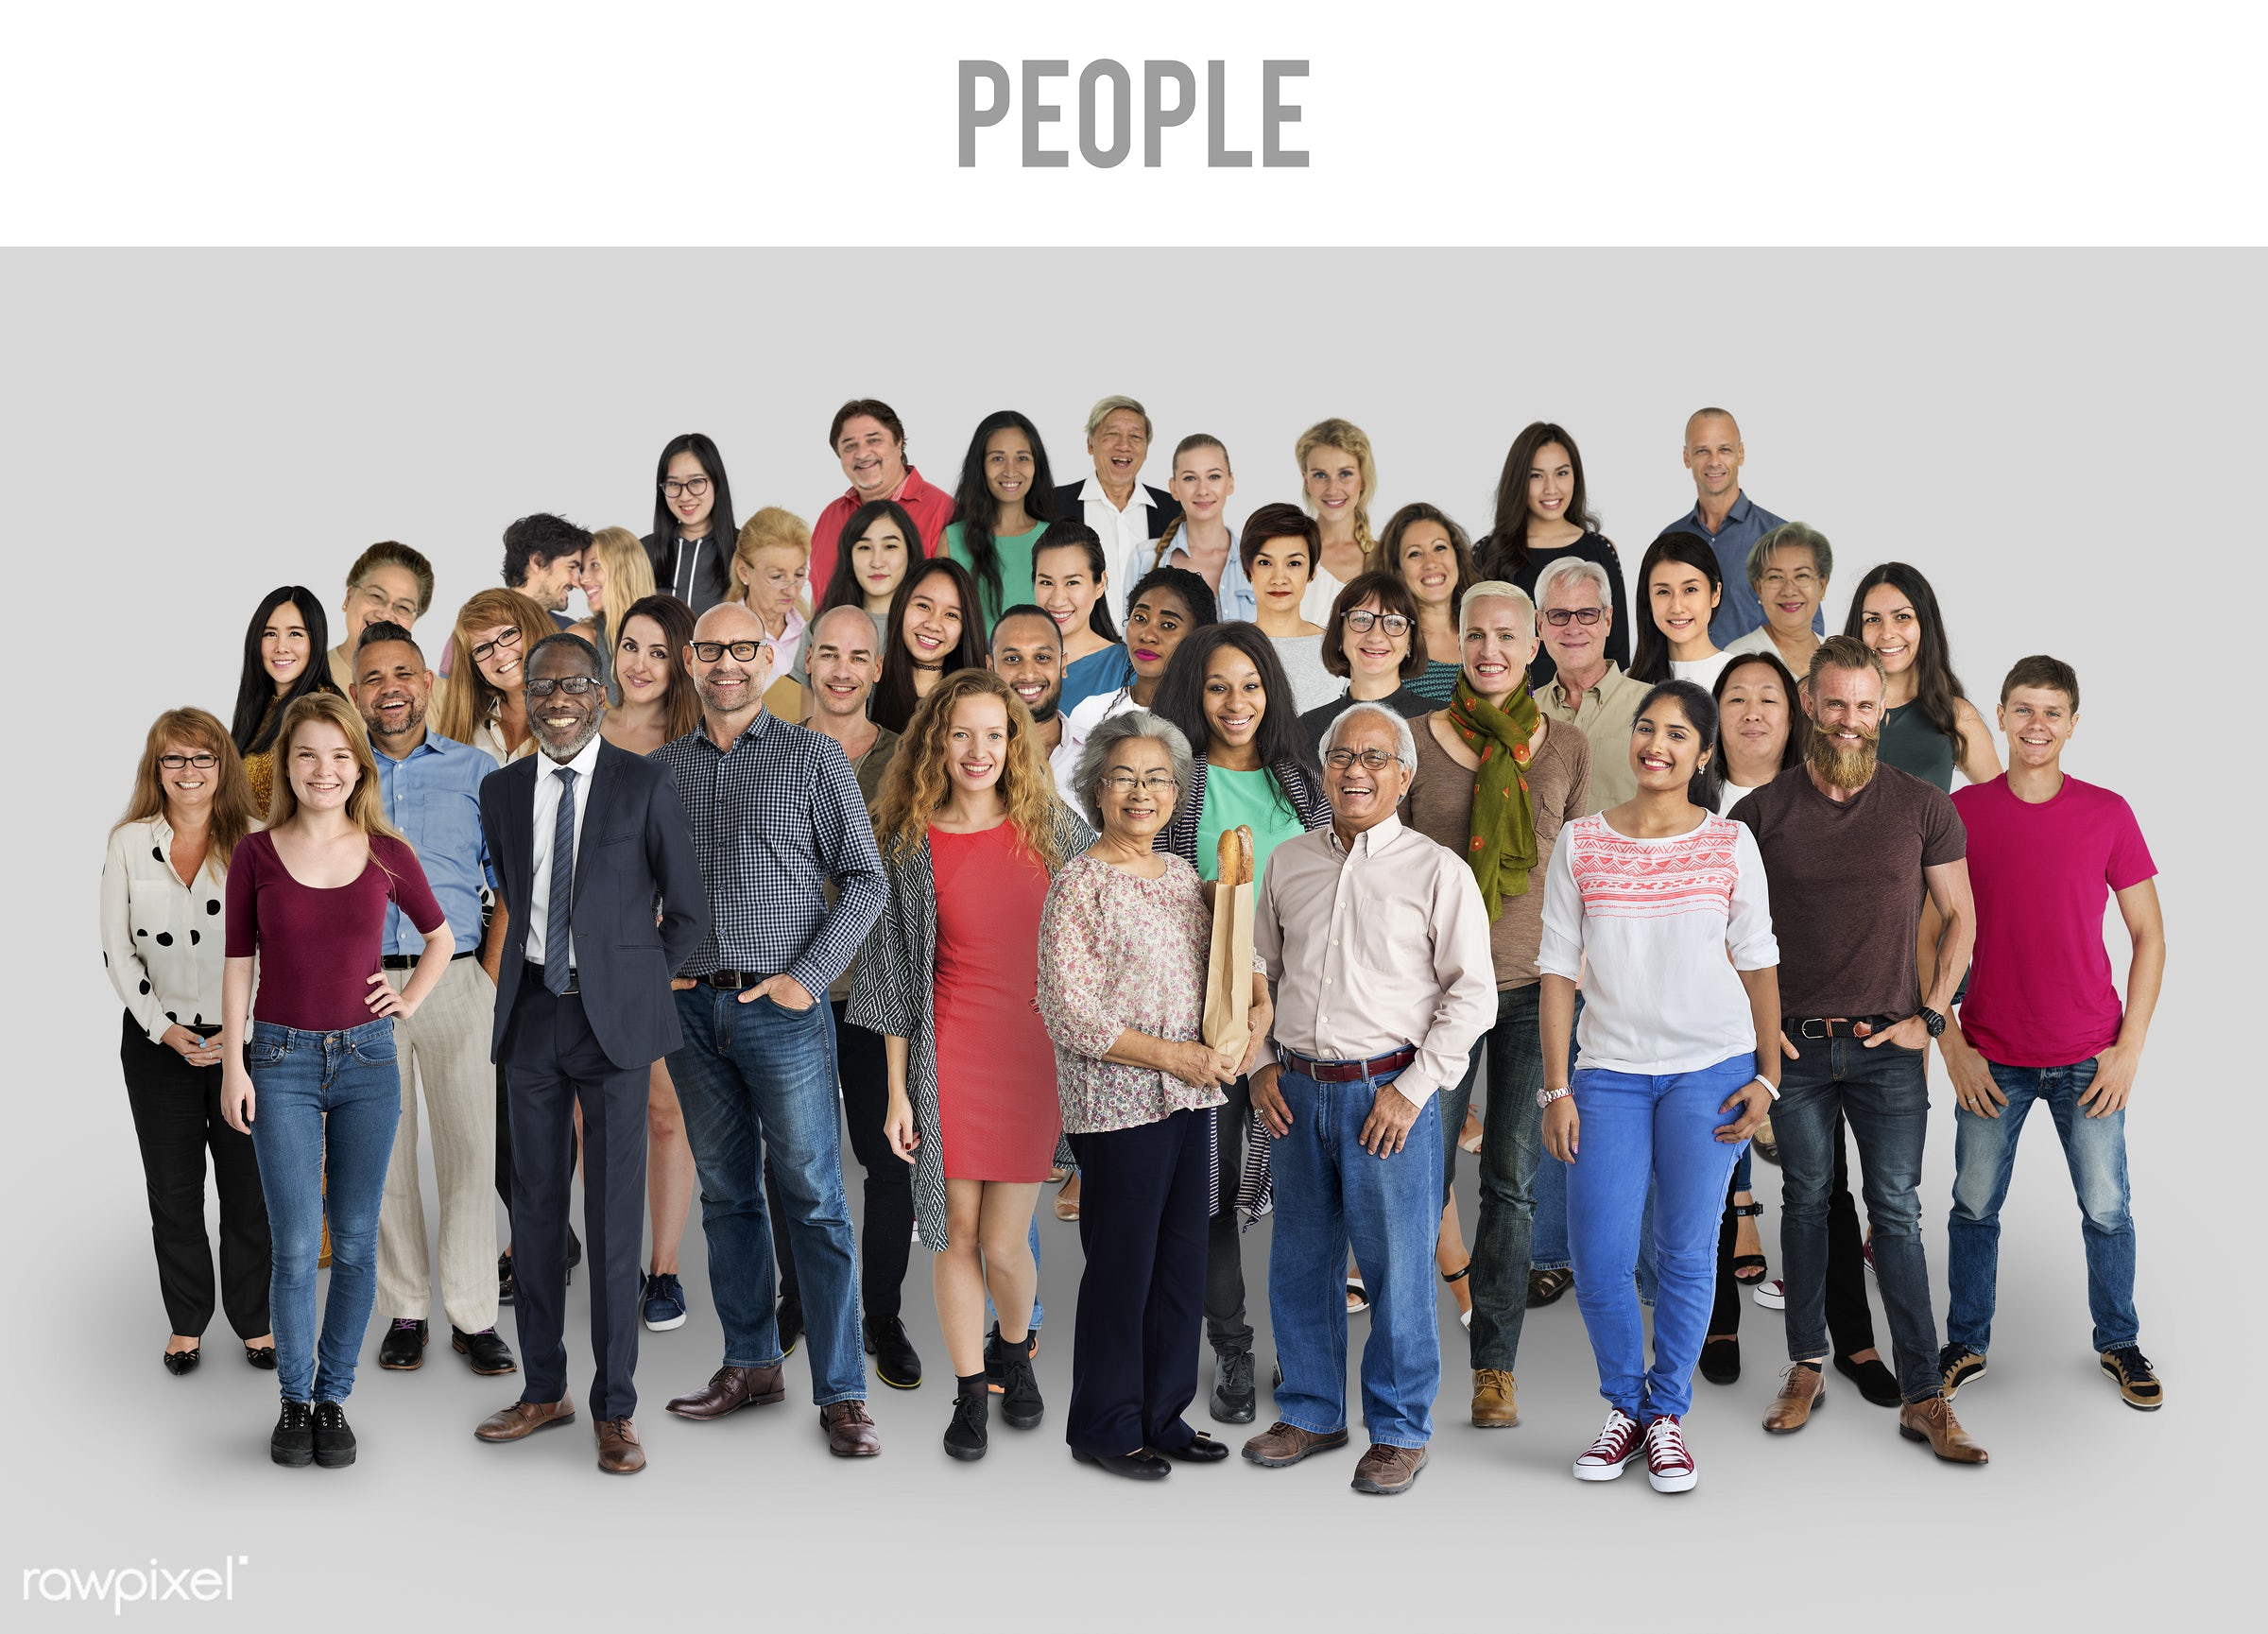 studio, person, diverse, people, attraction, together, retirement, young adult, woman, lifestyle, studio squareset, cheerful...